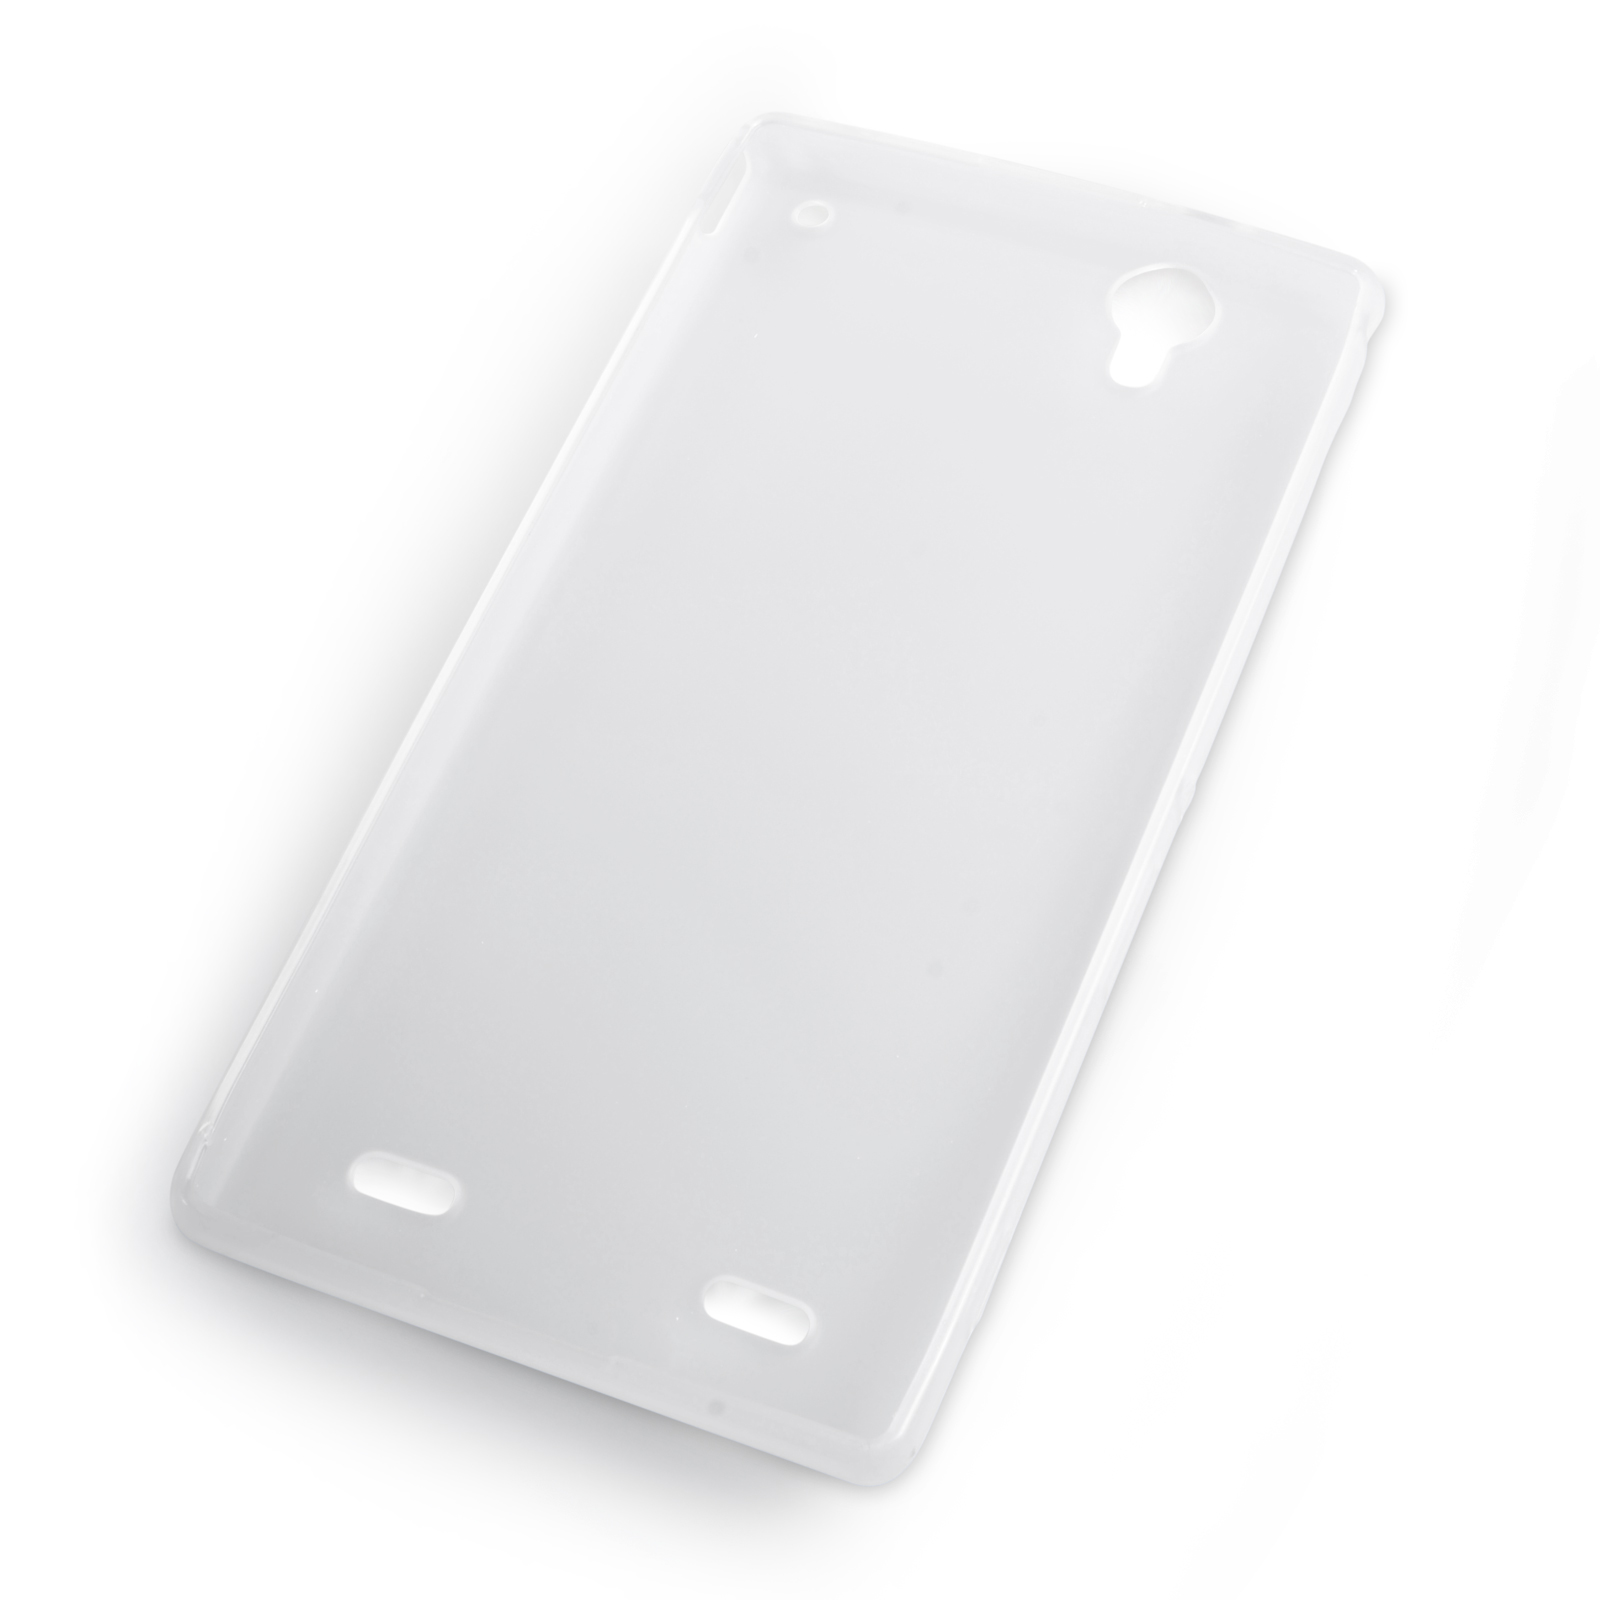 YouSave Accessories Sony Xperia T2 Ultra Silicone Gel Case - Clear